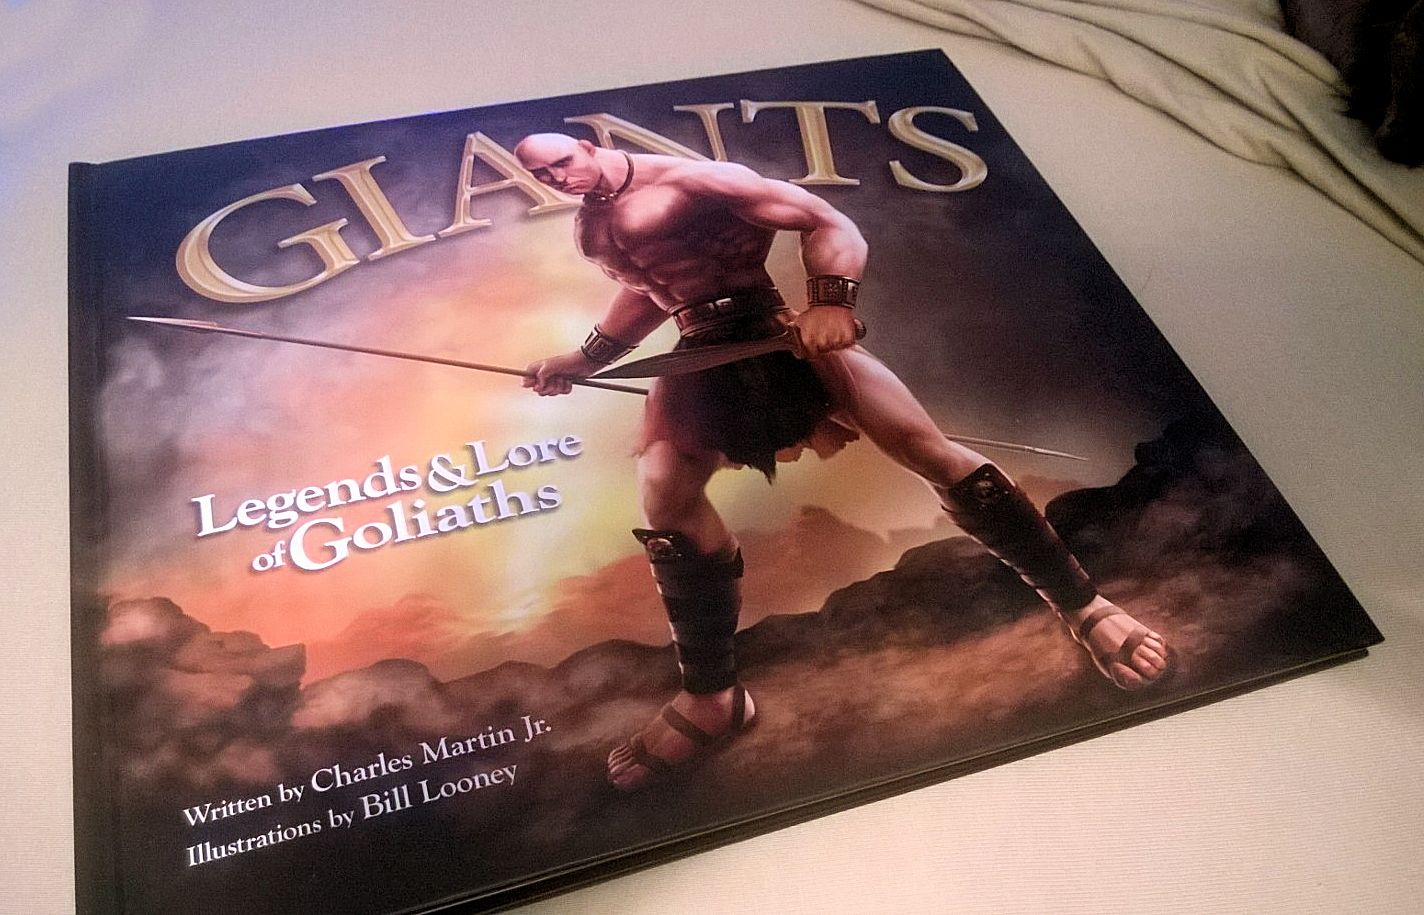 Giants Legends and Lore of Goliaths